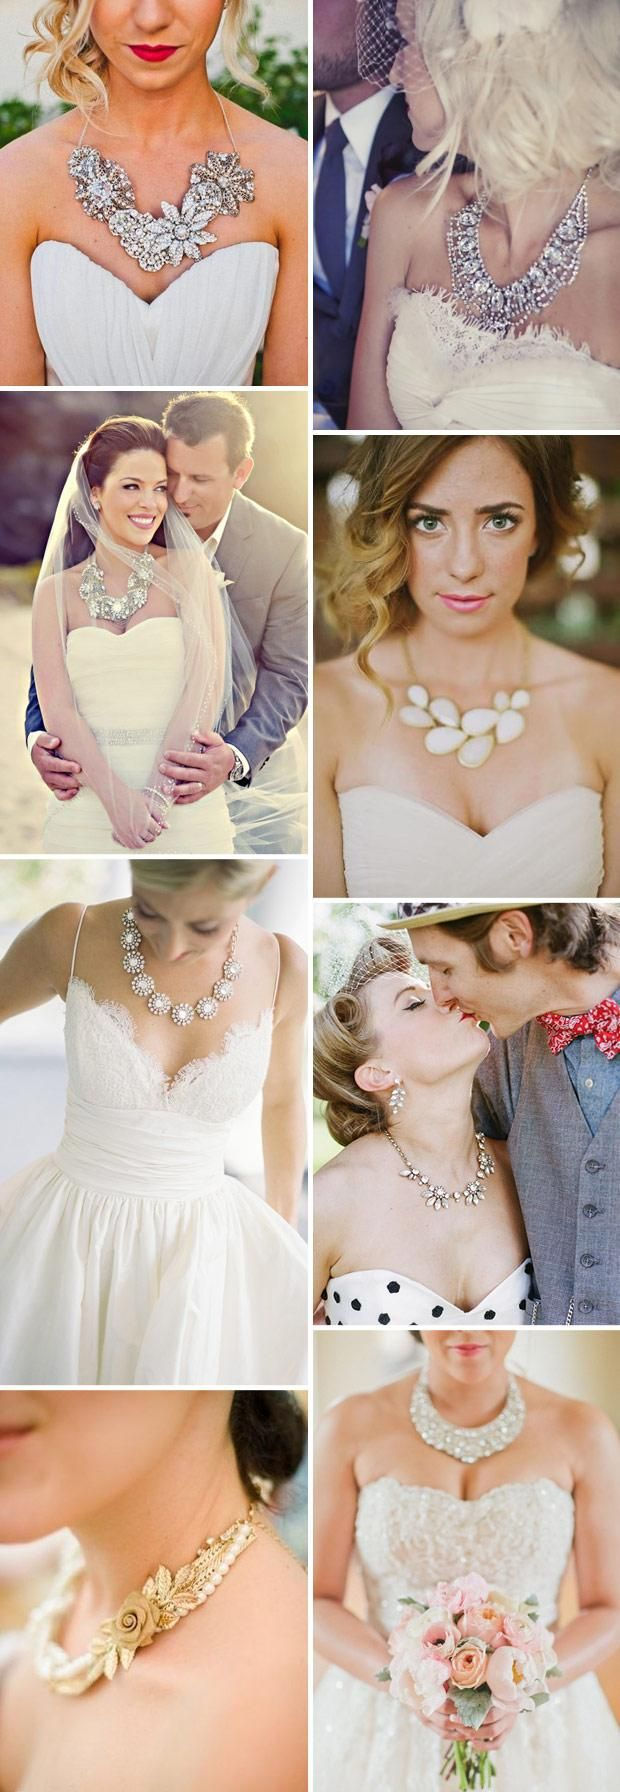 Be bold: Wear a statement necklace on your wedding day!